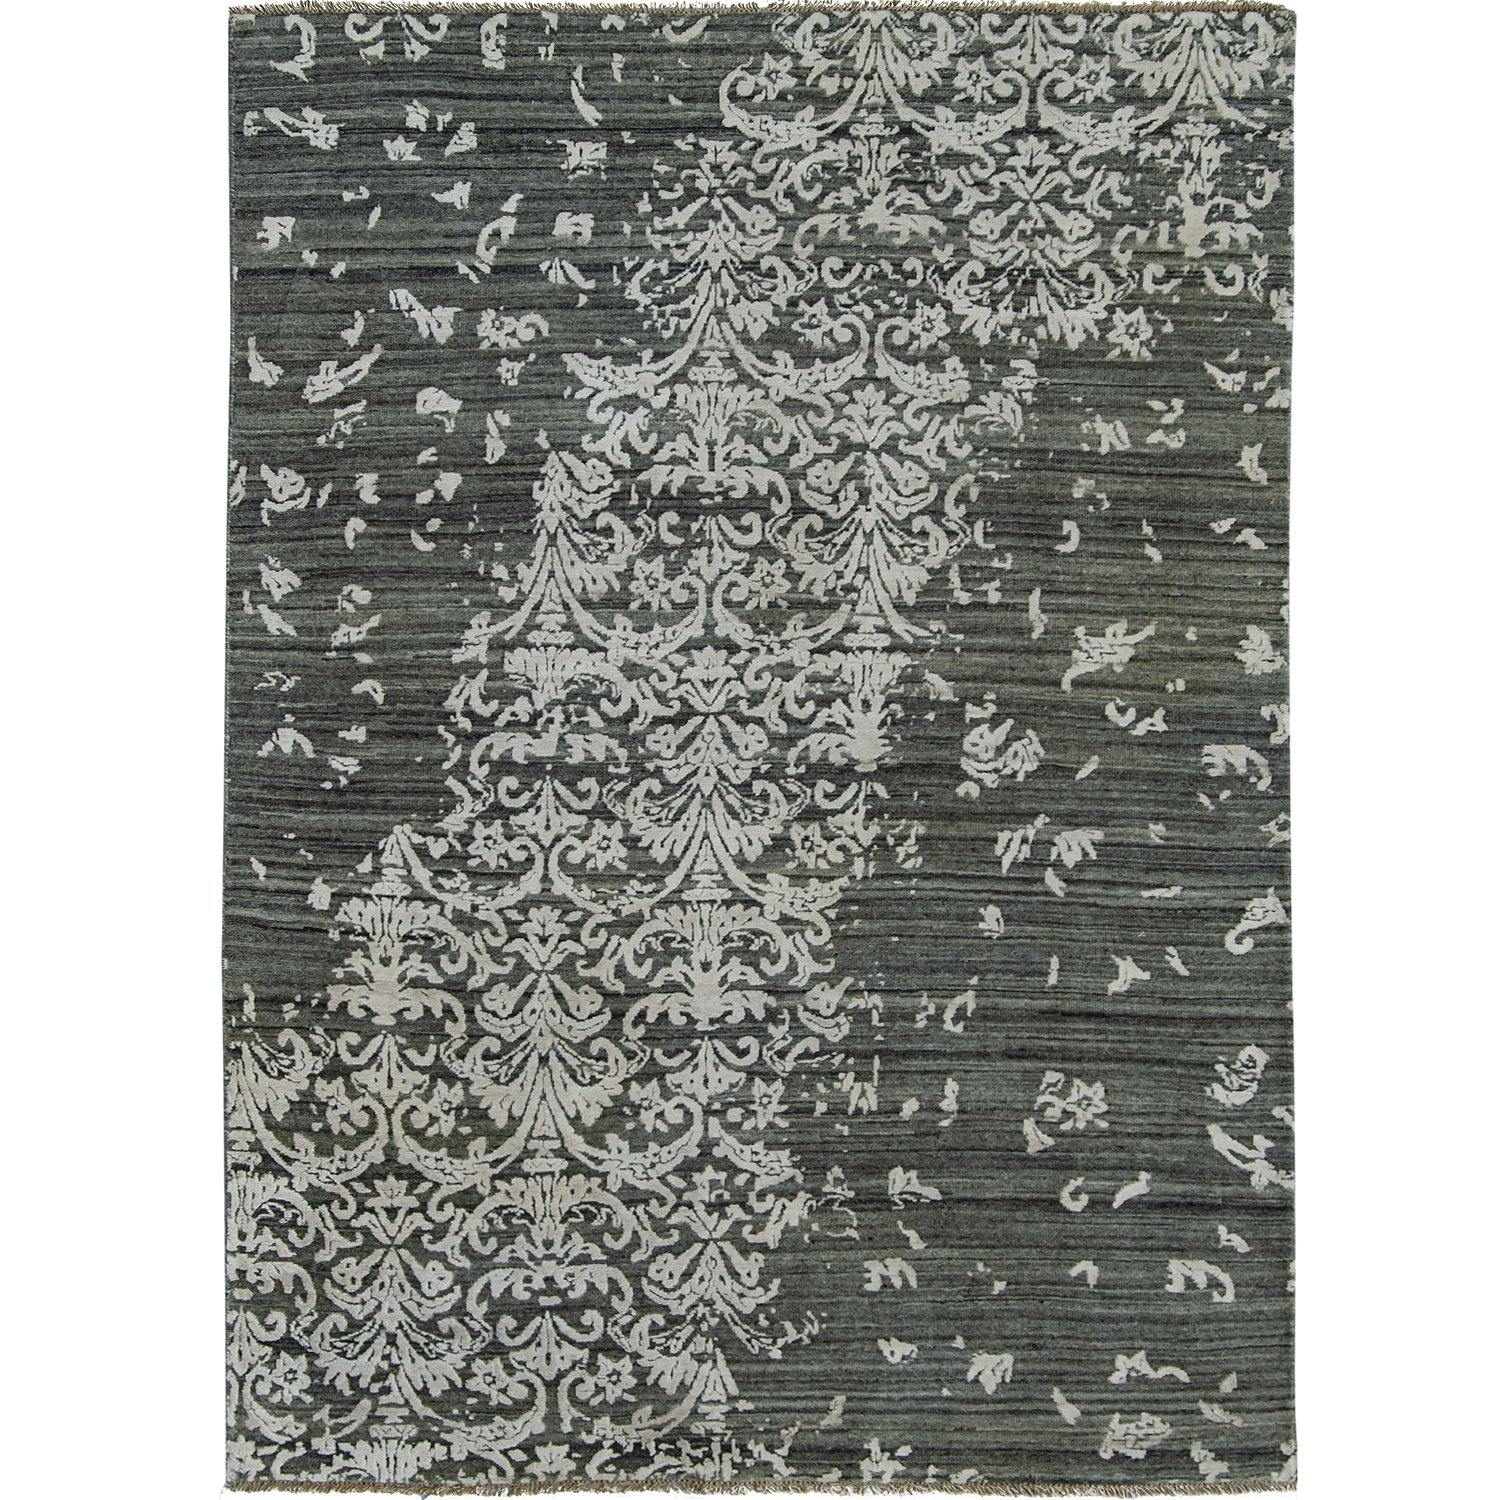 Contemporary Hand-knotted NZ Wool rug 139cm x 195cm Persian-Rug | House-of-Haghi | NewMarket | Auckland | NZ | Handmade Persian Rugs | Hand Knotted Persian Rugs